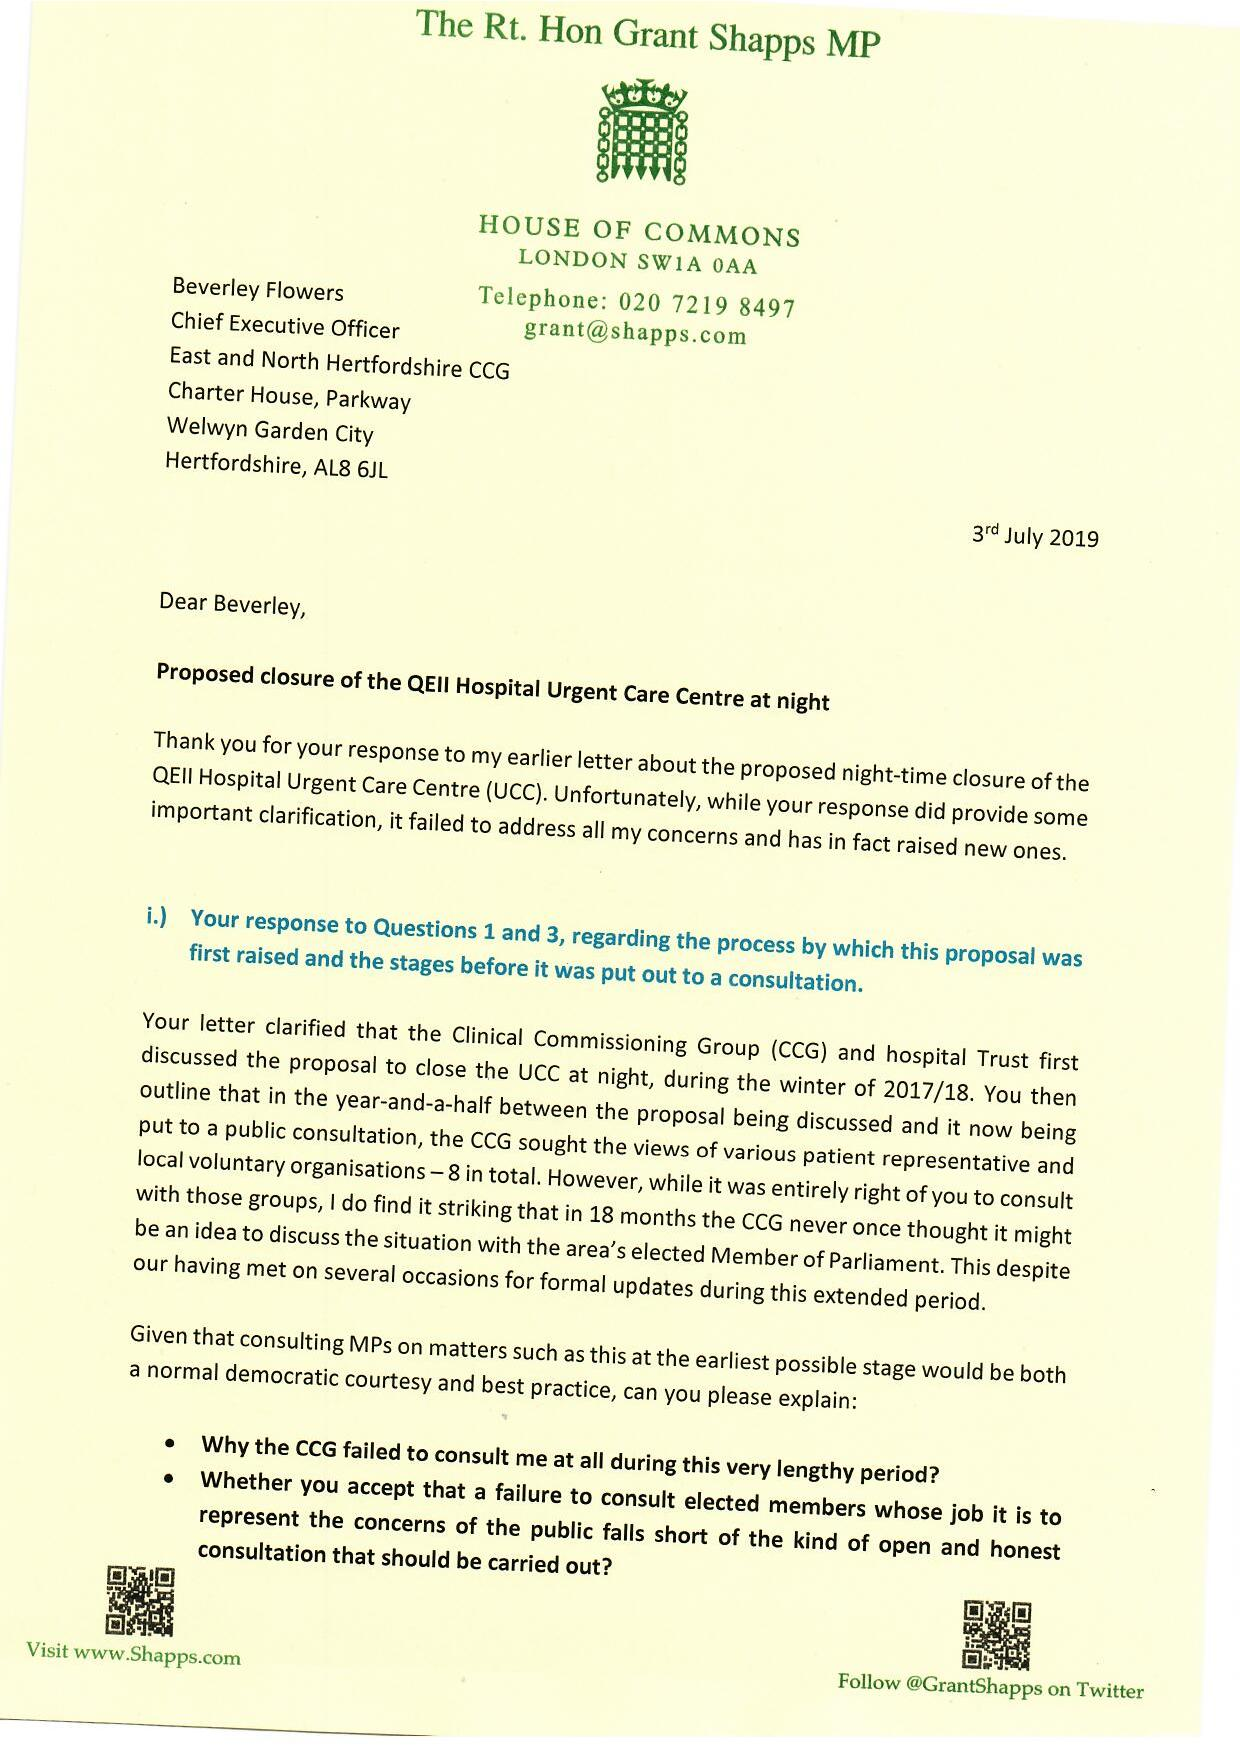 Proposed closure of the QE2 Hospital Urgent Care Centre at